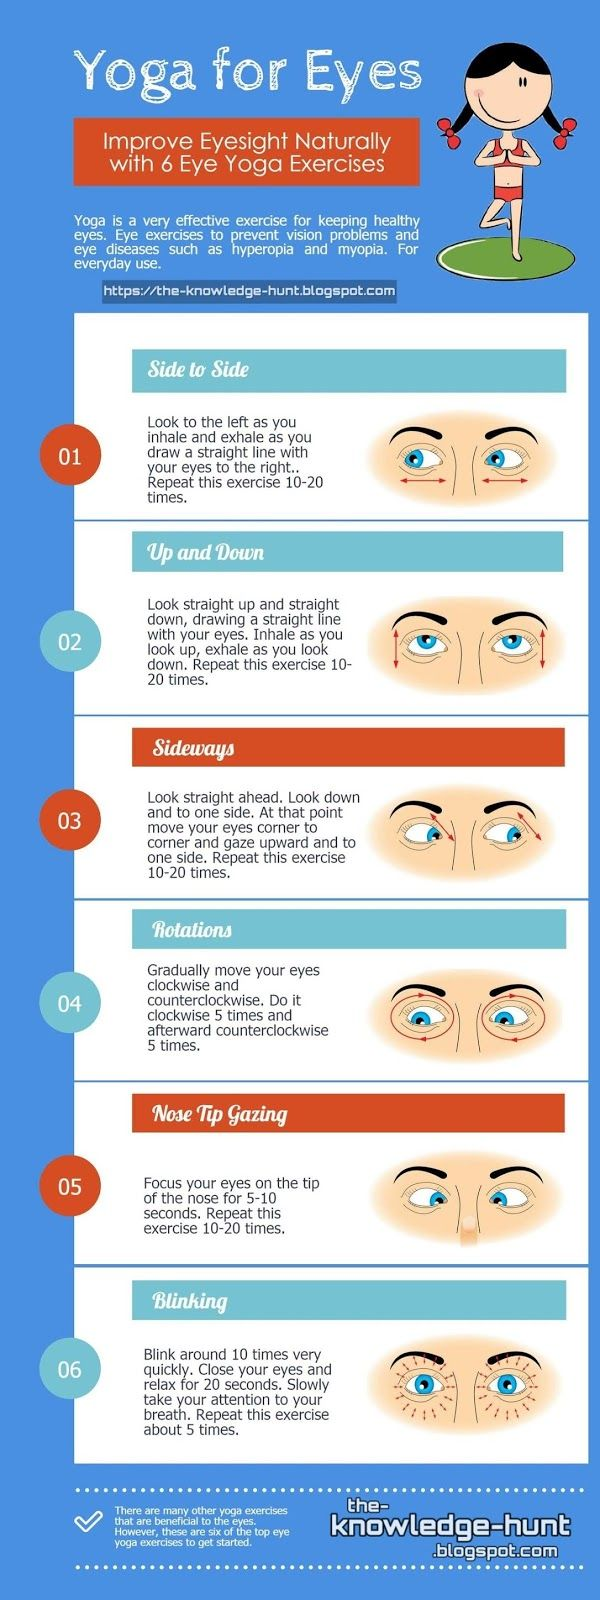 Infos : Eye Health Remedies and How to improve your Eyesight Naturally Without Glasses Yoga for eyes, eyes health, improve eyesight naturally